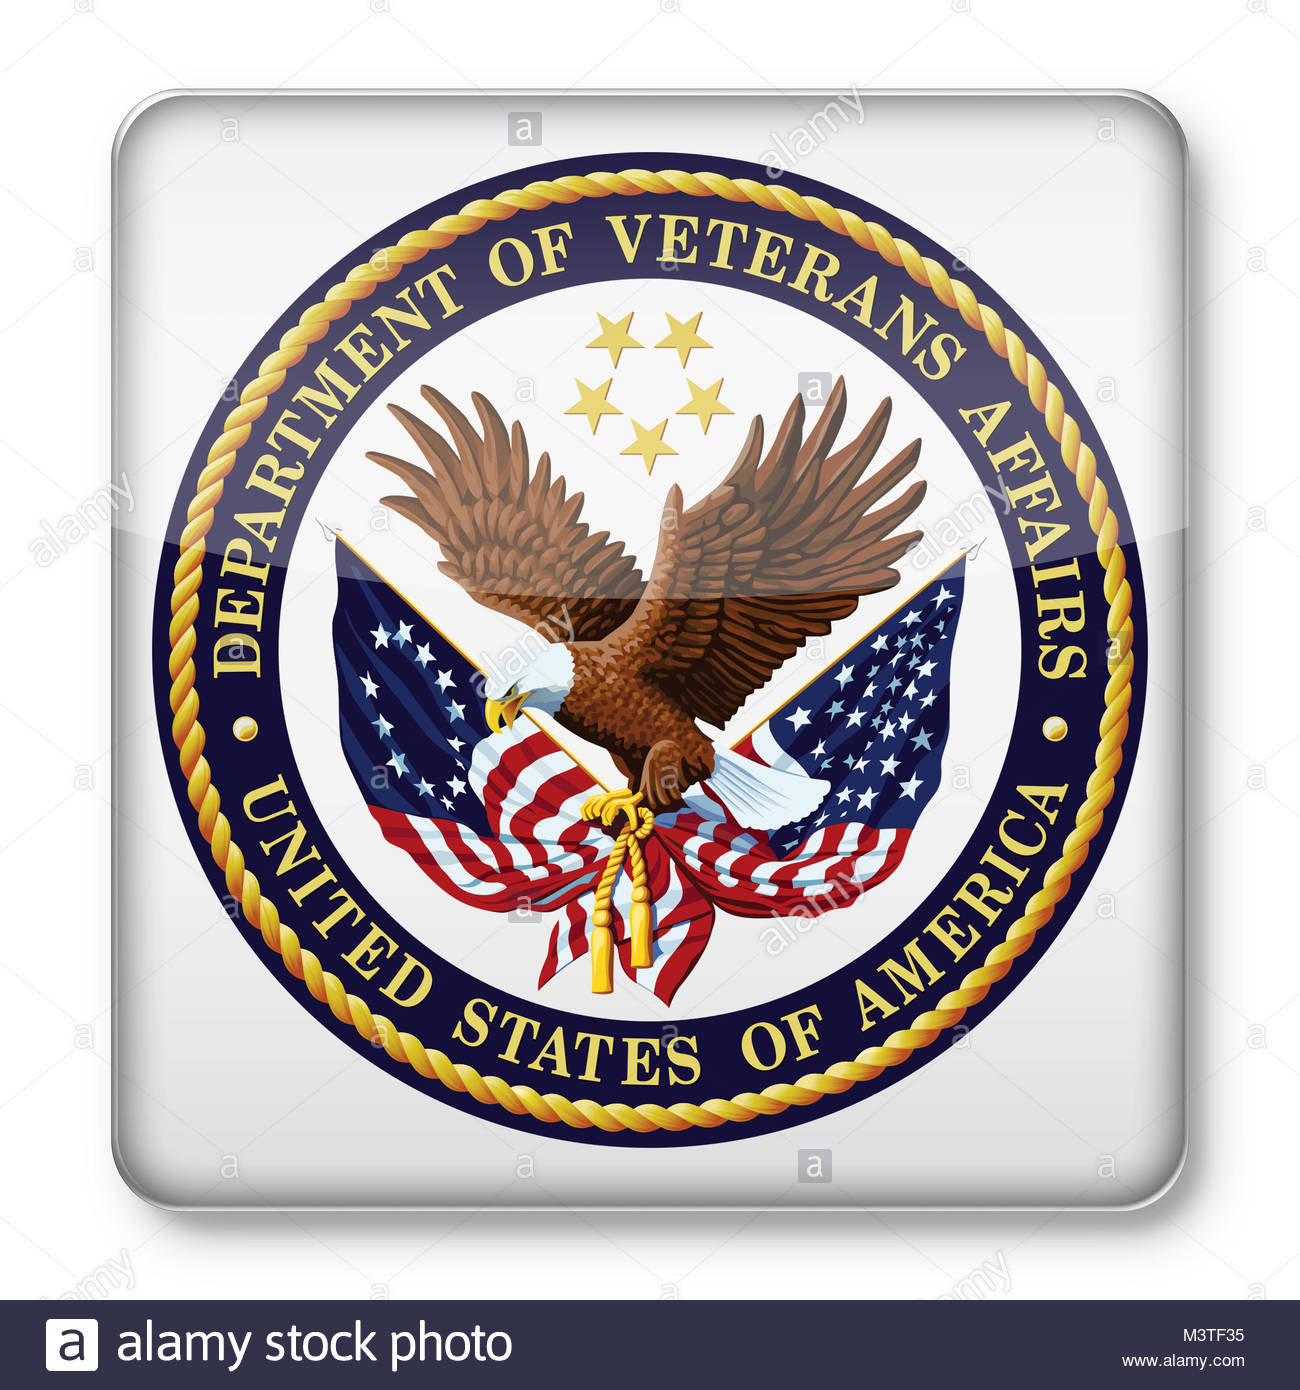 United States Department of Veterans Affairs VA logo icon - Stock Image